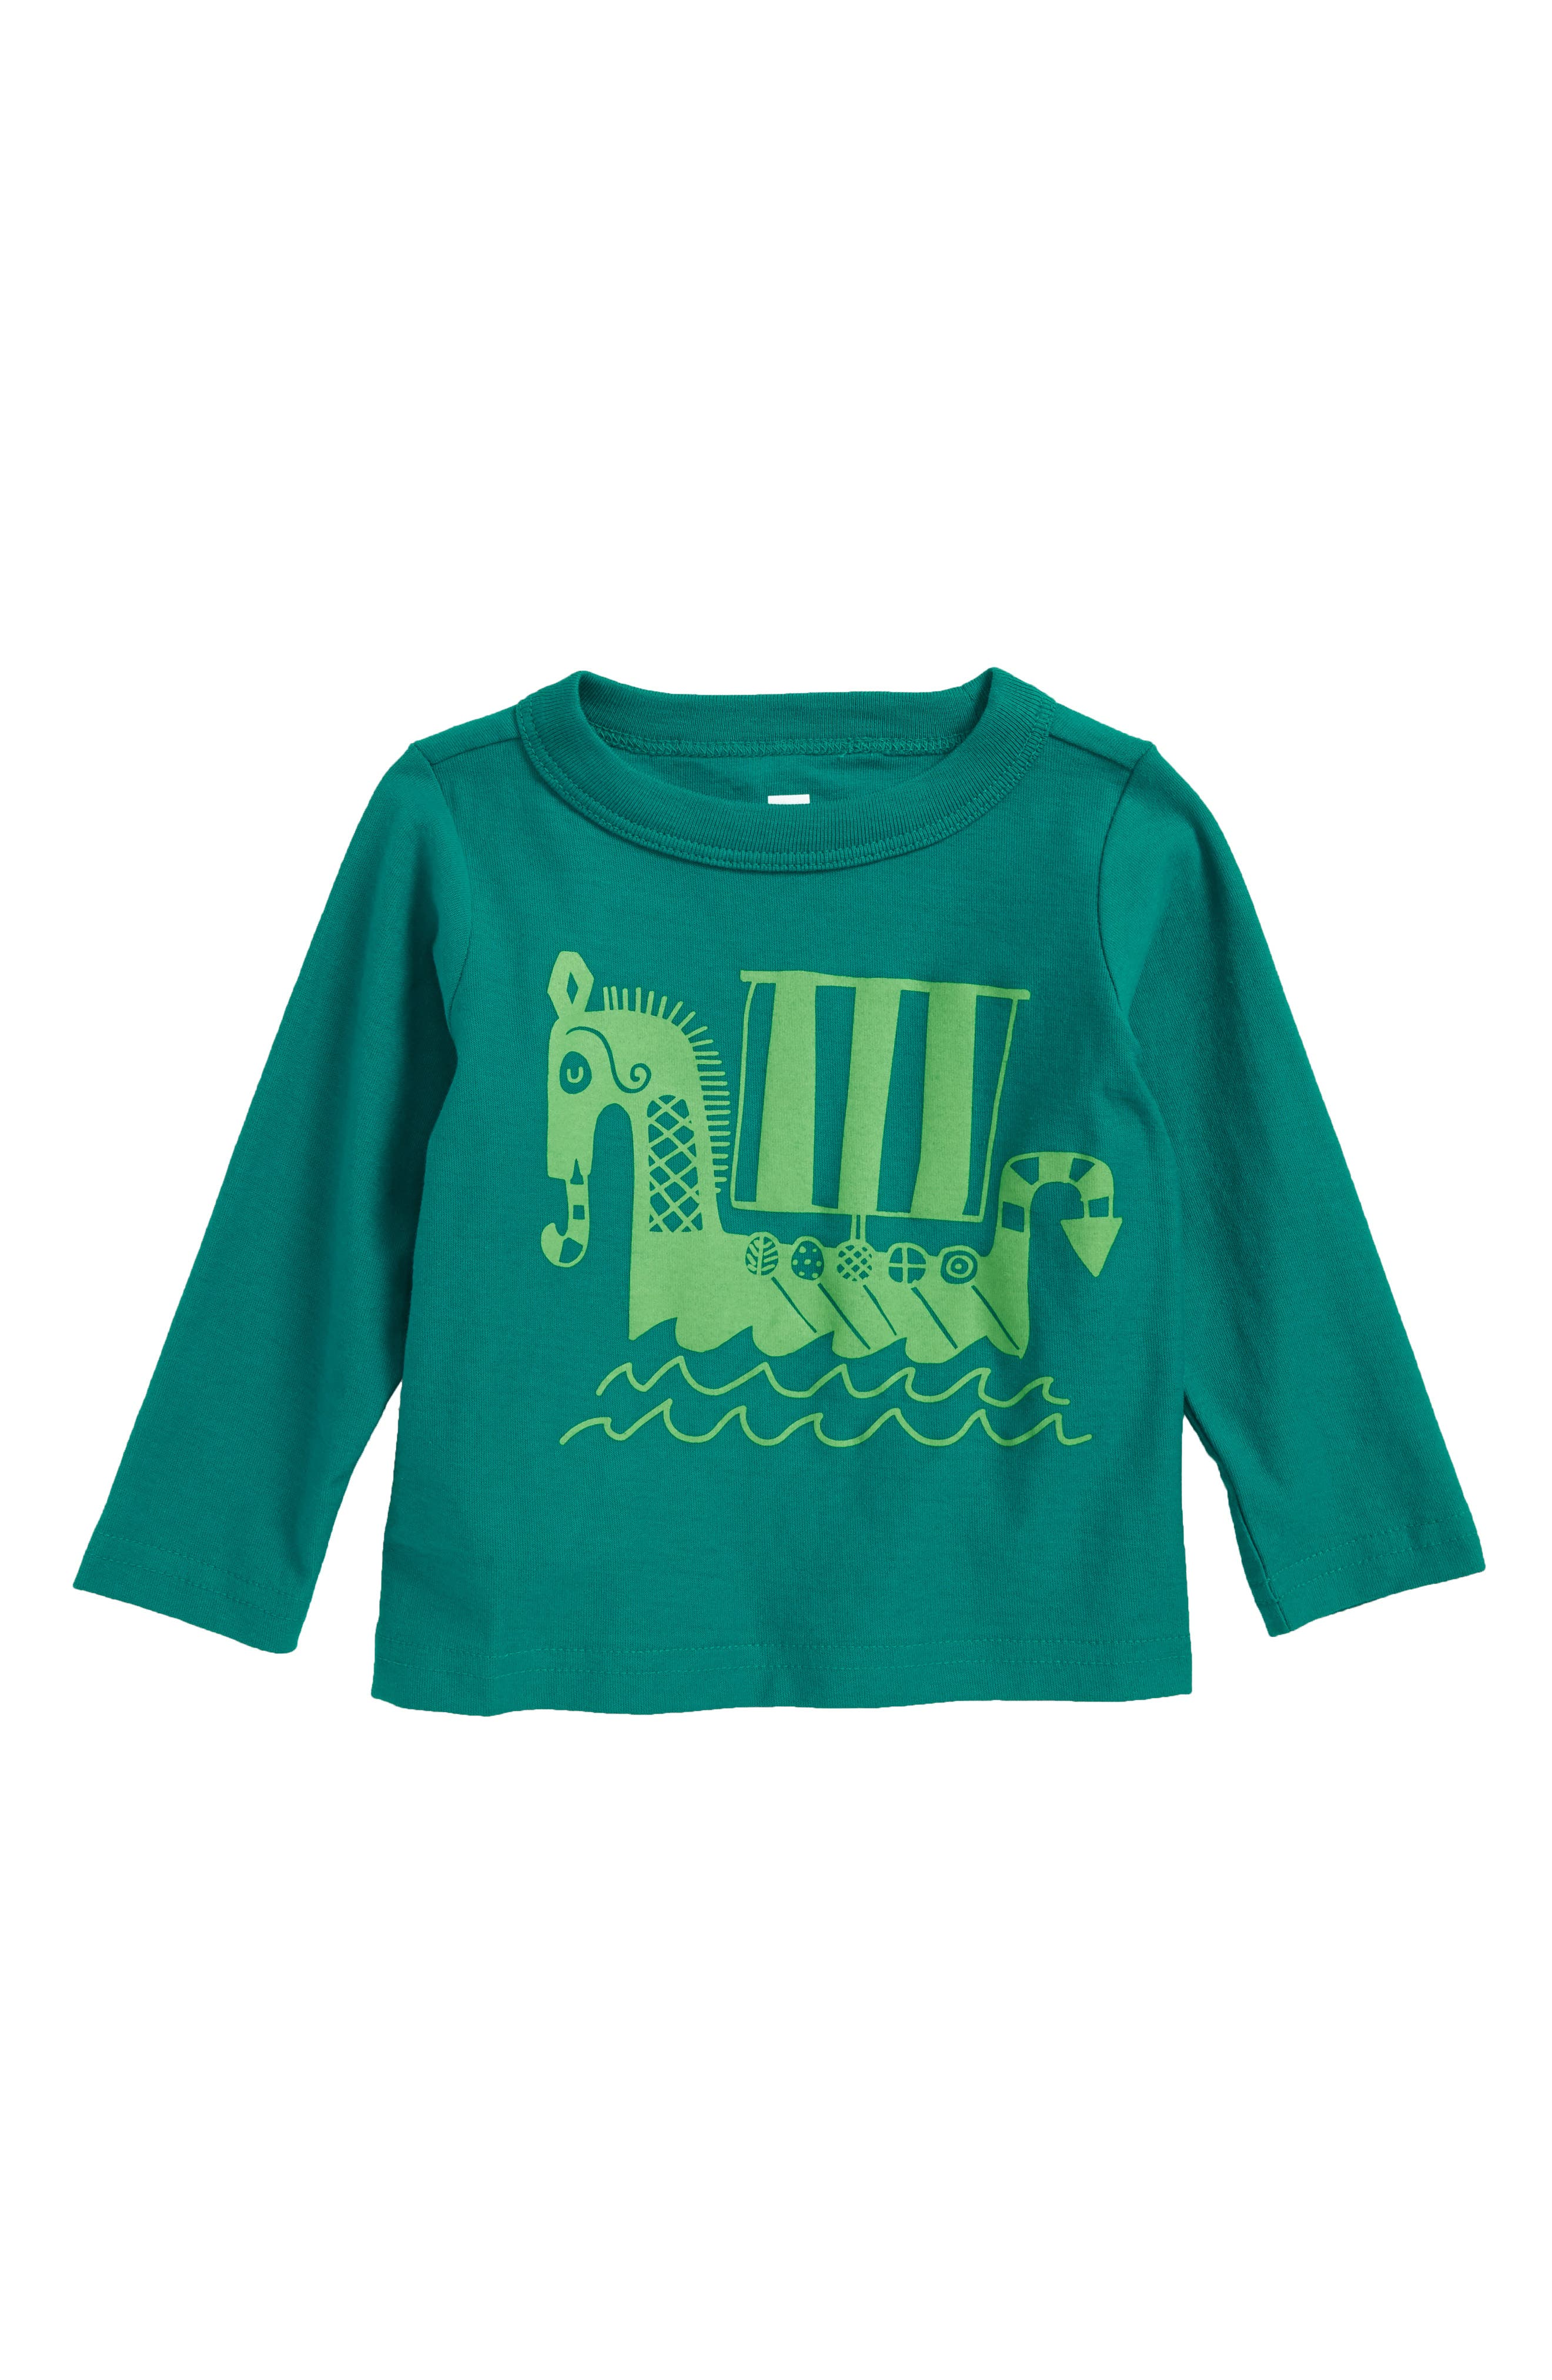 Up Helly Aa T-Shirt,                         Main,                         color, Jewel Green